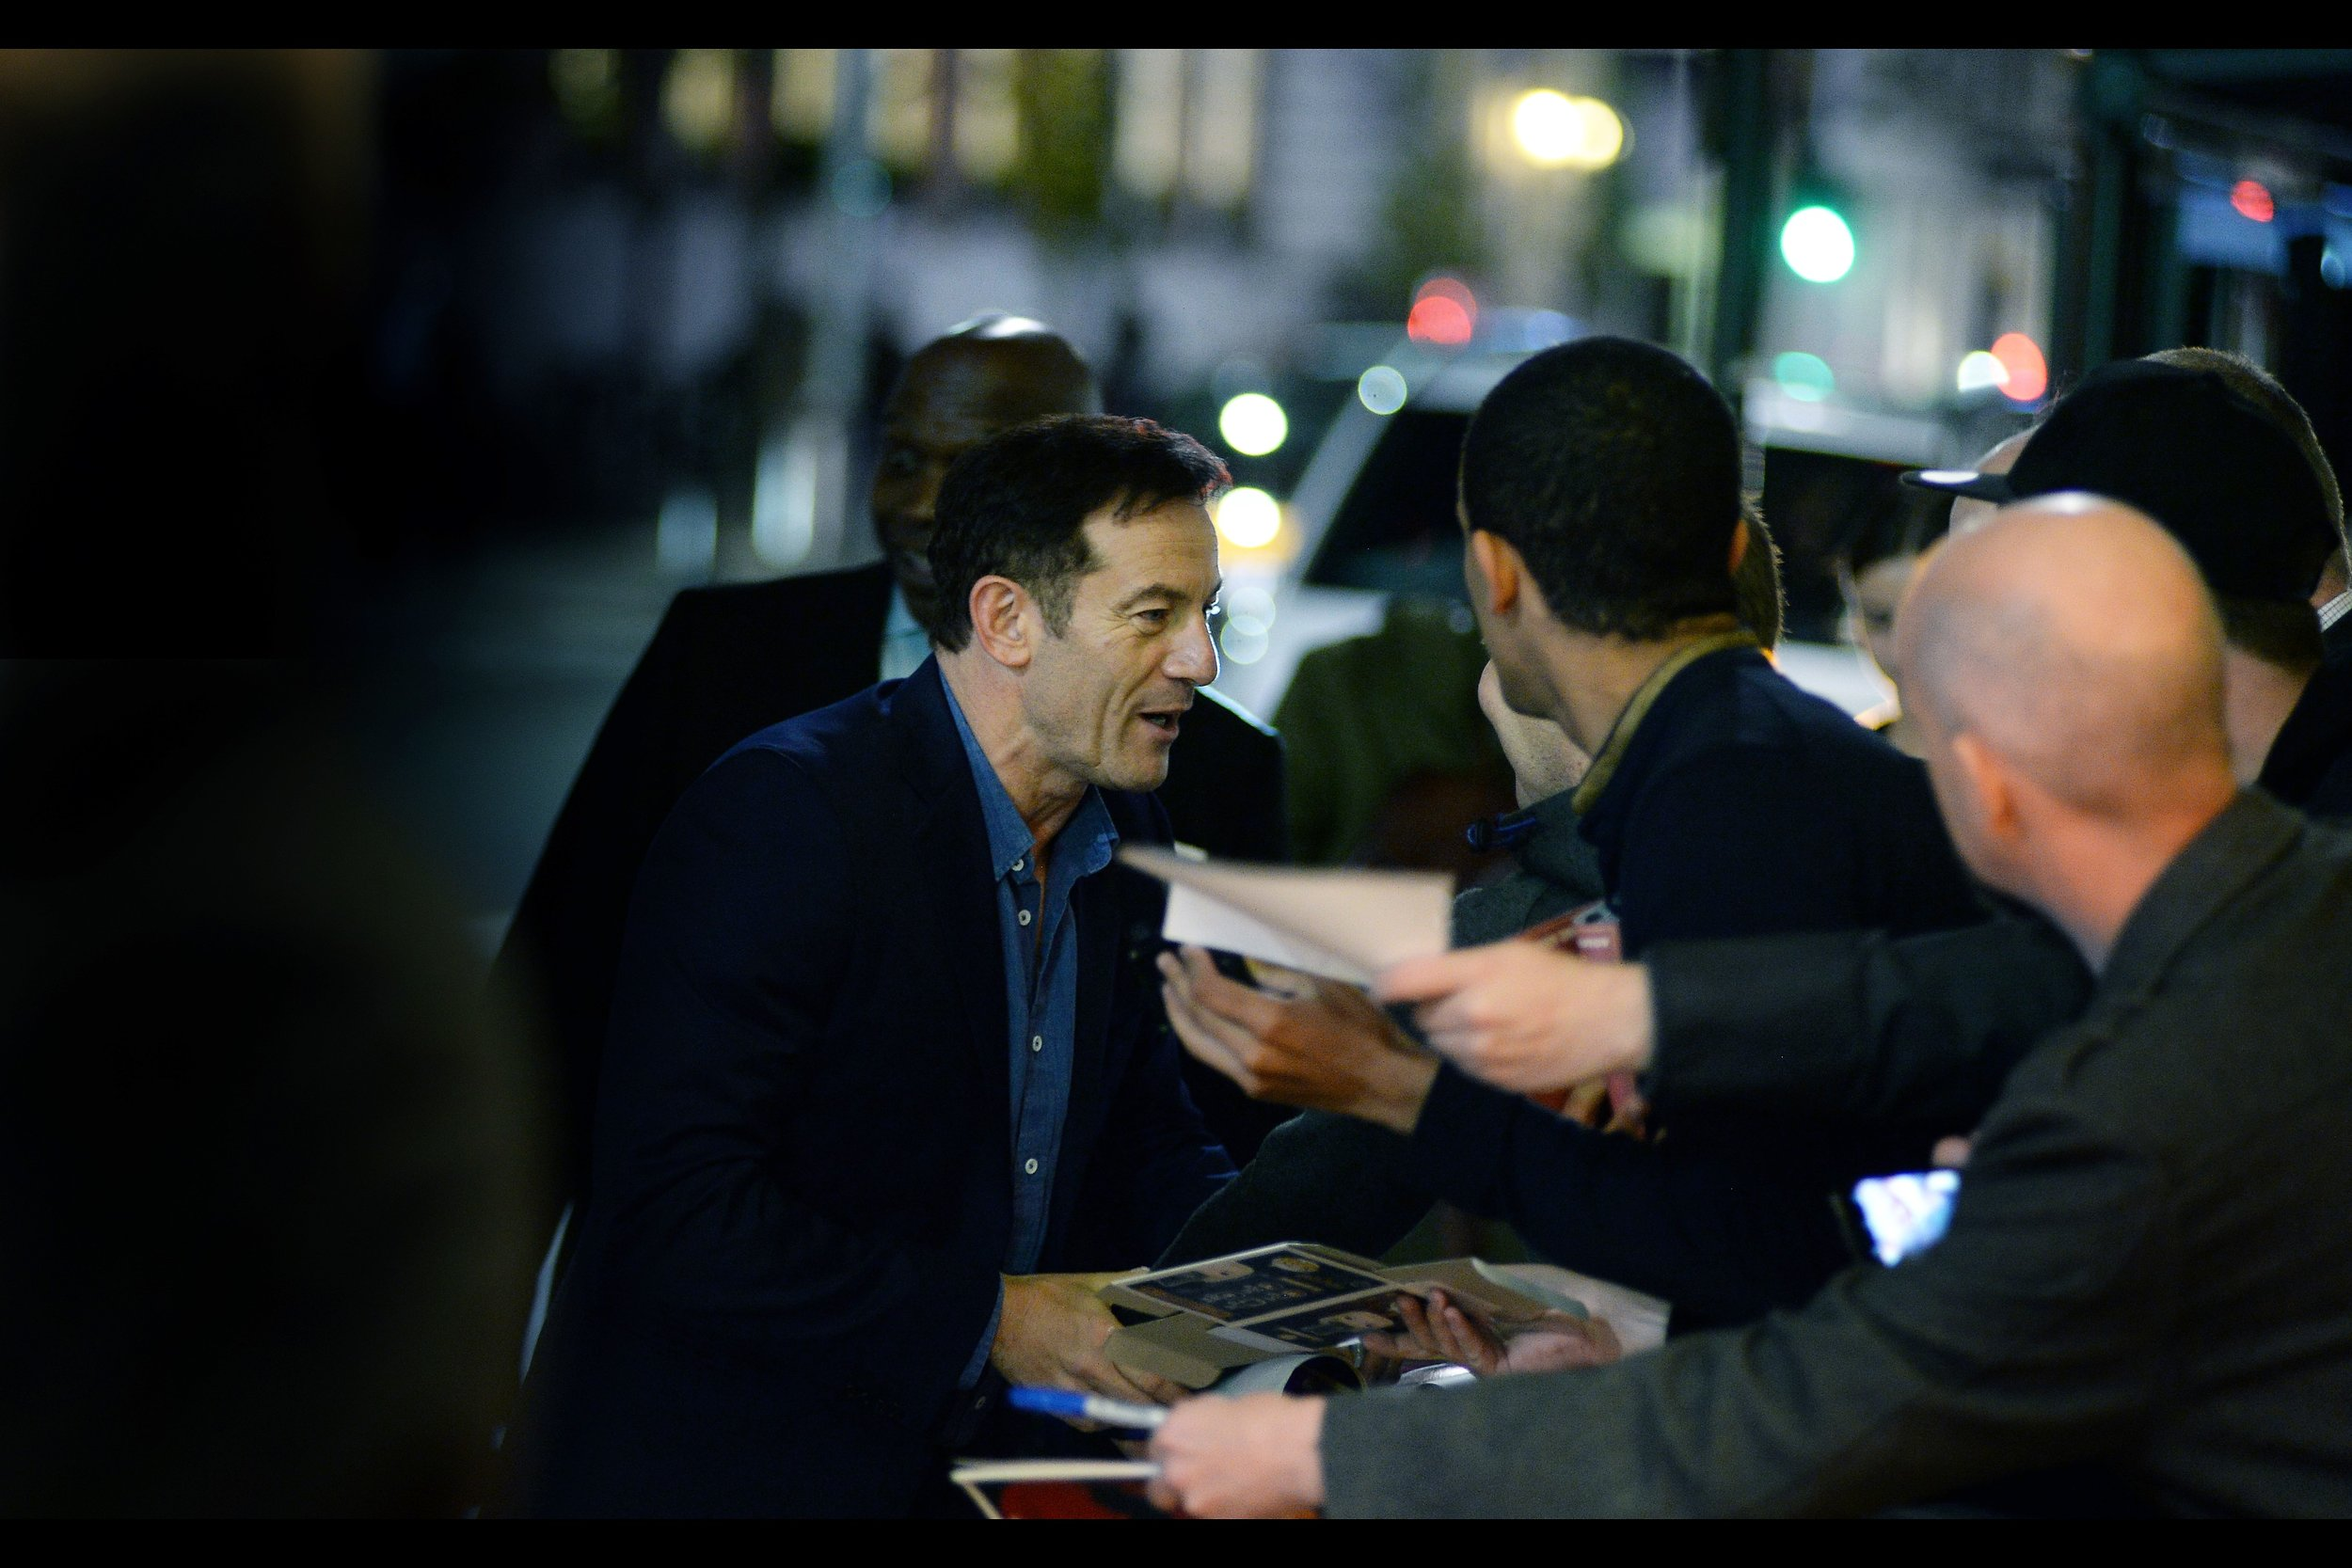 It's Jason Isaacs! I'm disproportionately excited because although I've certainly photographed him before, I missed photographing him on back-to-back days at London Film Festival, and I'm usually not that lax, even on as little sleep as I get during London Film Festival.